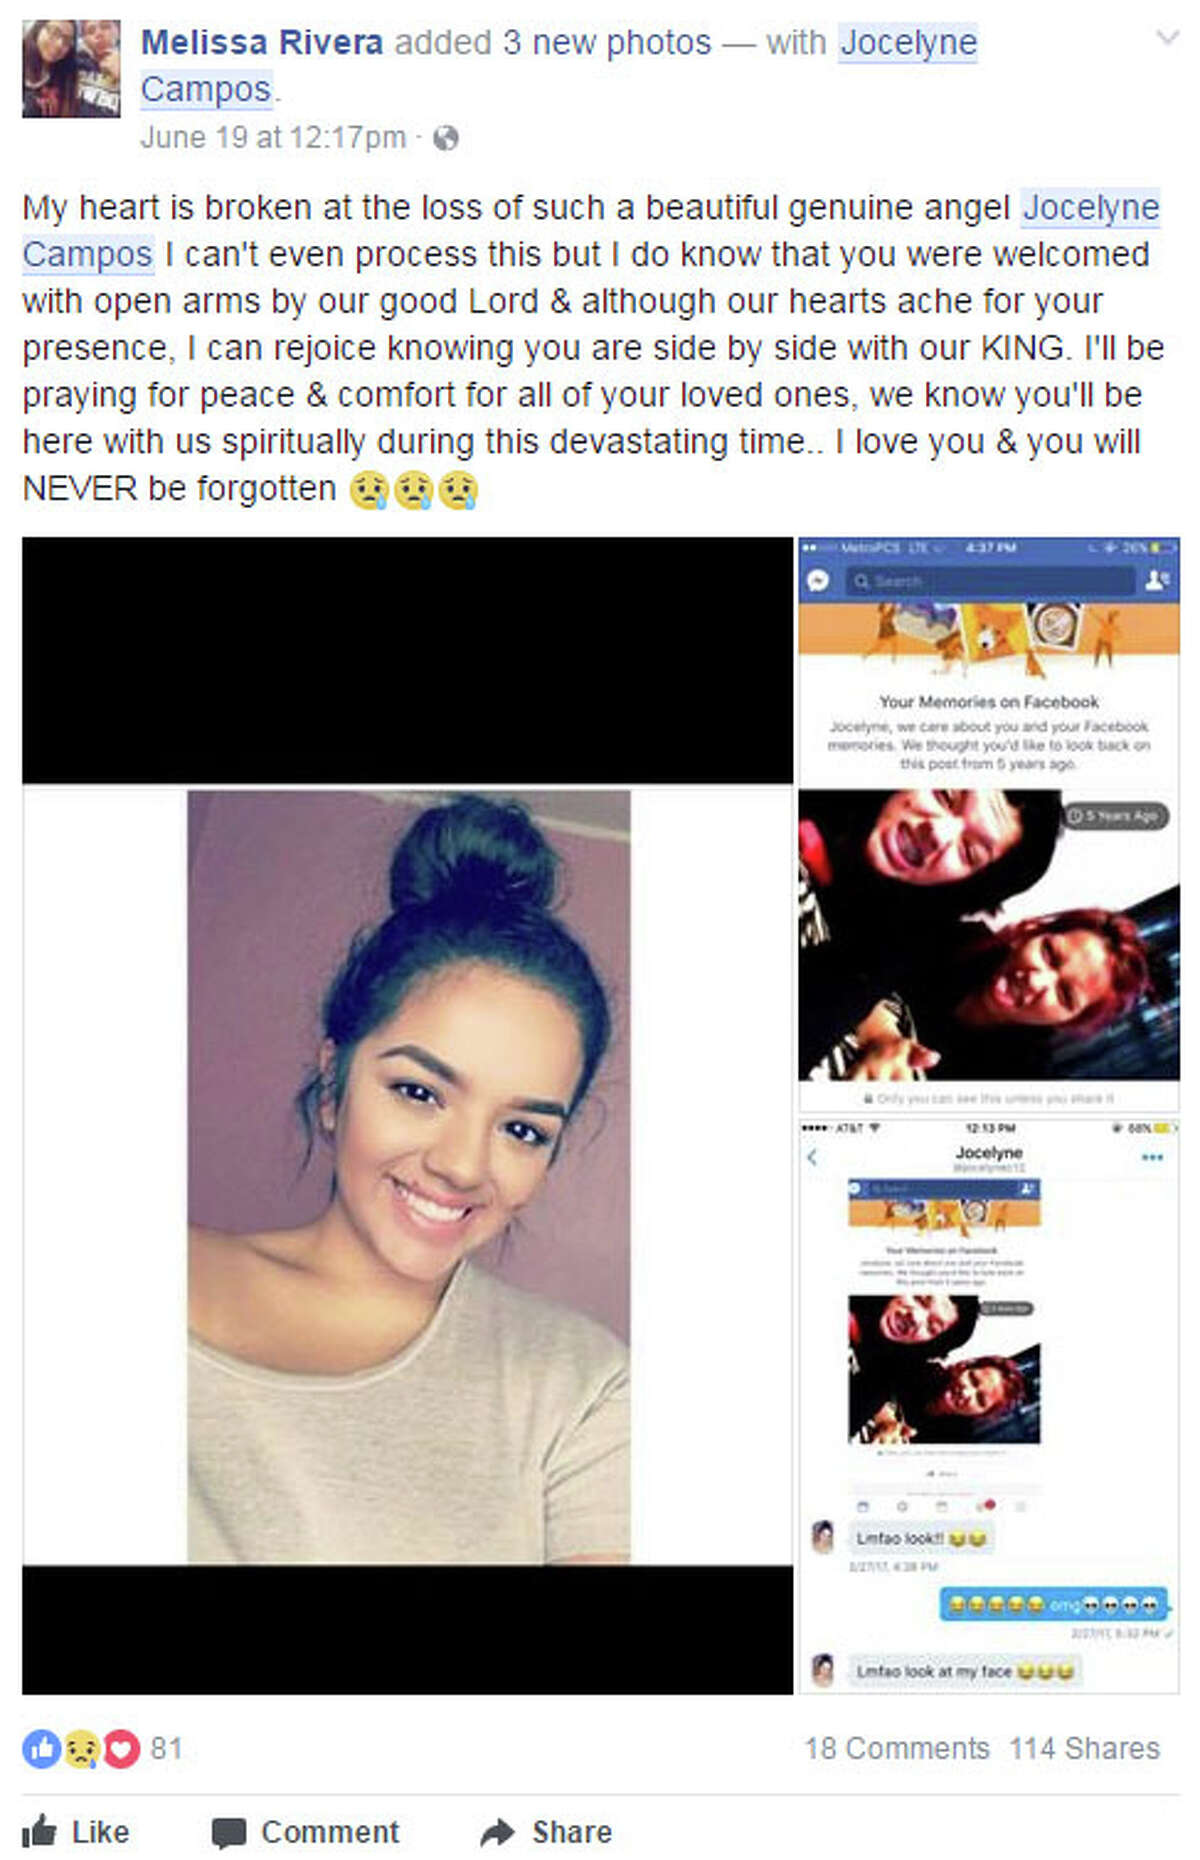 Friends and family mourn the loss of 19-year-old Jocelyne Campos who died after falling from a horse on Monday.